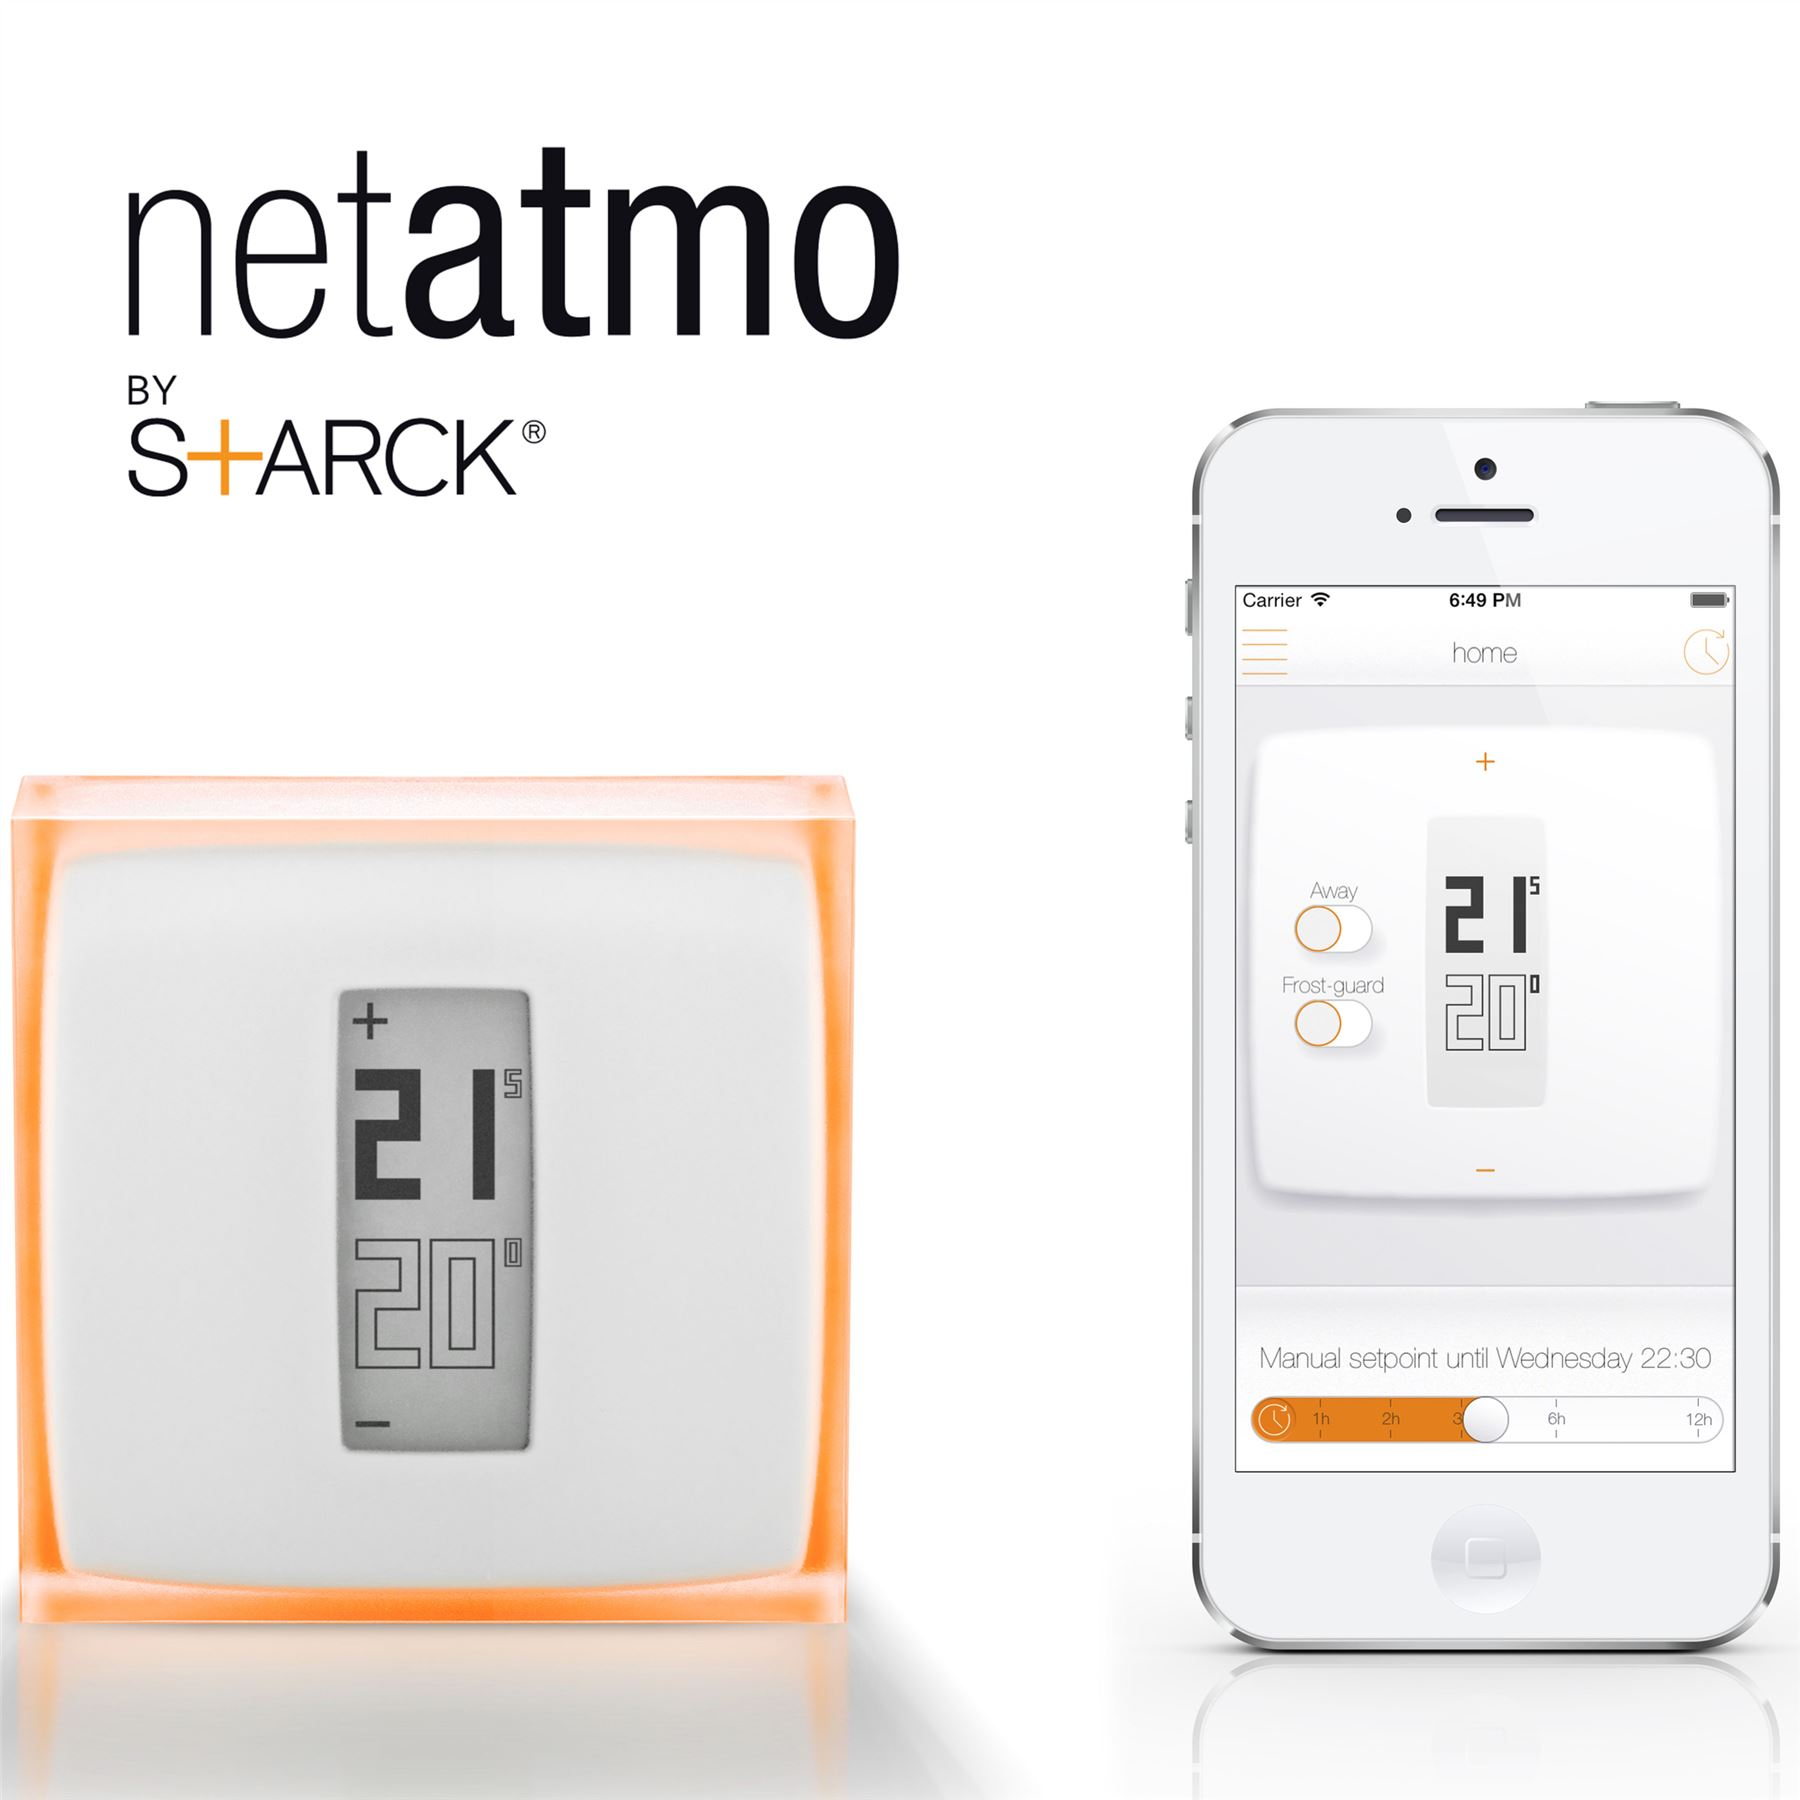 netatmo heizung thermostat f r smartphone mobile kontrolle energiesparende neu ebay. Black Bedroom Furniture Sets. Home Design Ideas